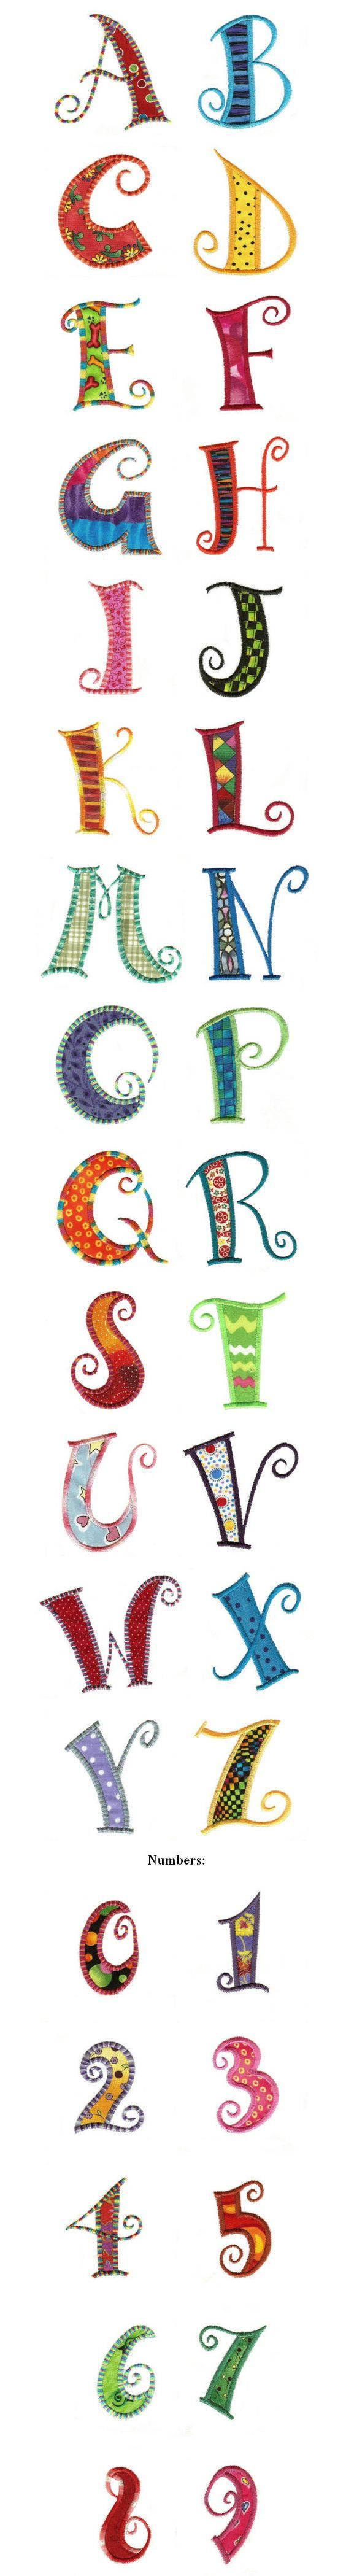 Free Applique Letters For Embroidery Machine